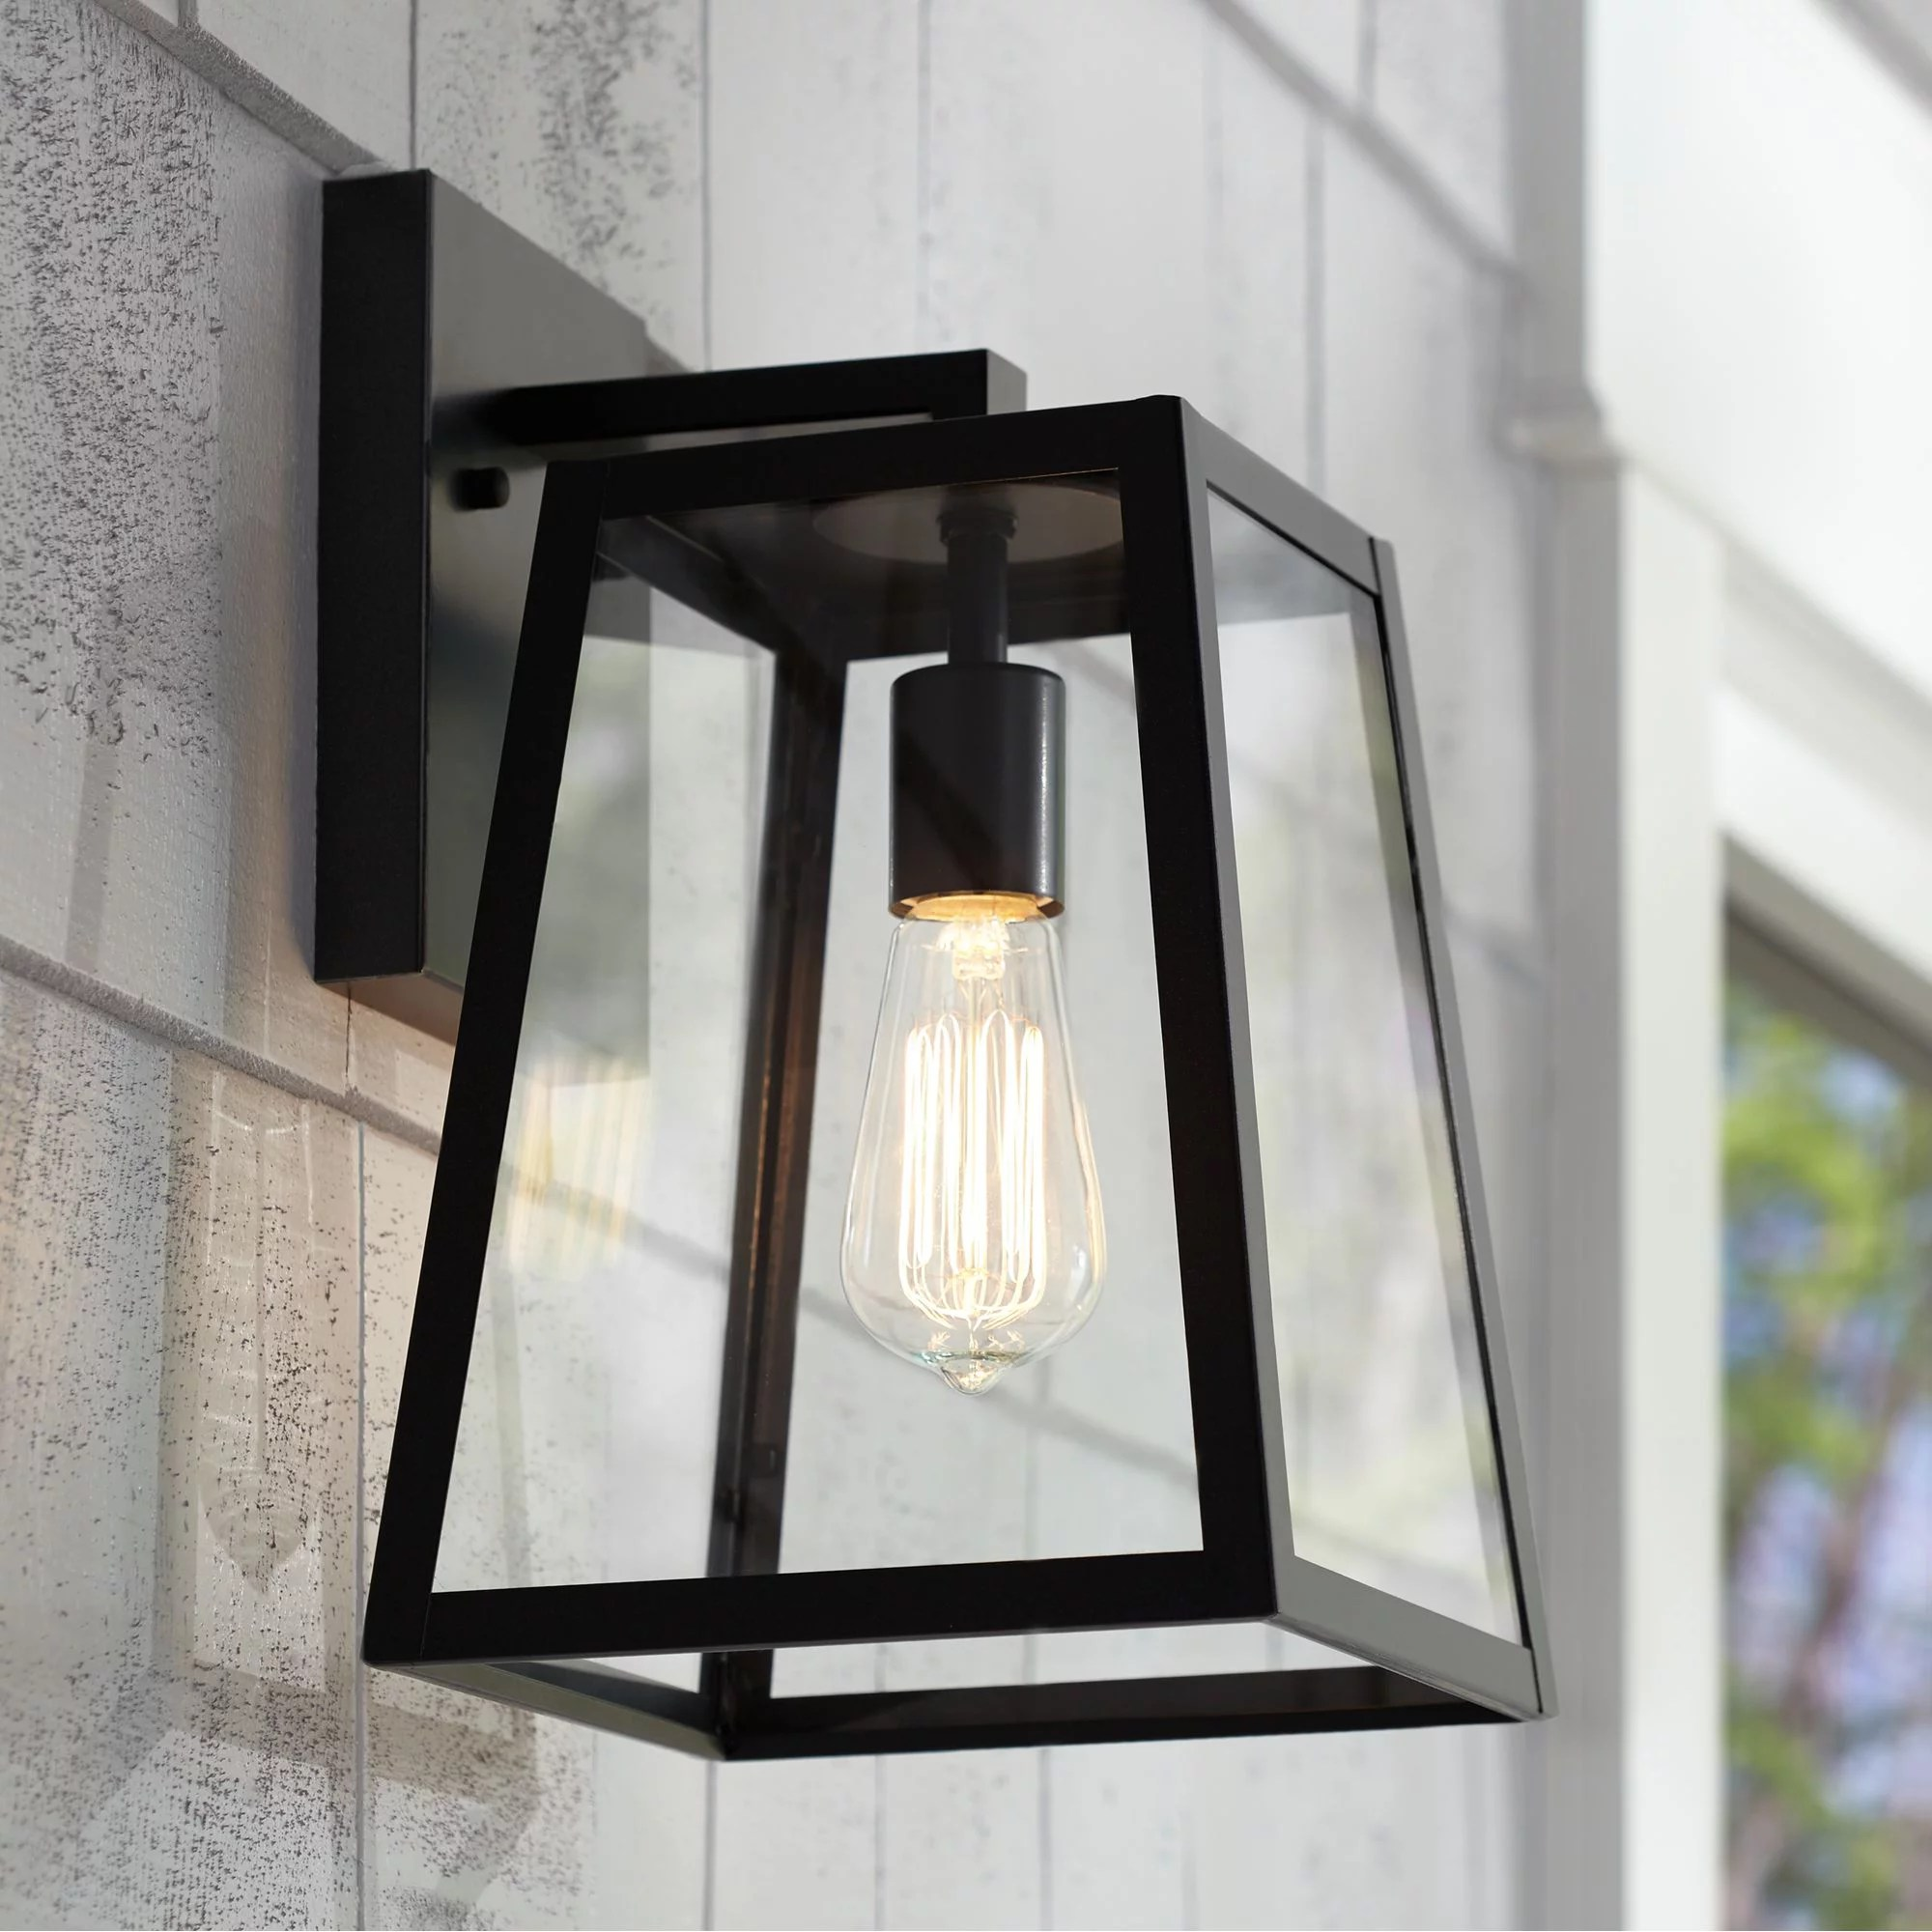 john timberland modern outdoor wall light fixture black 13 clear glass edison style bulb for exterior house porch patio